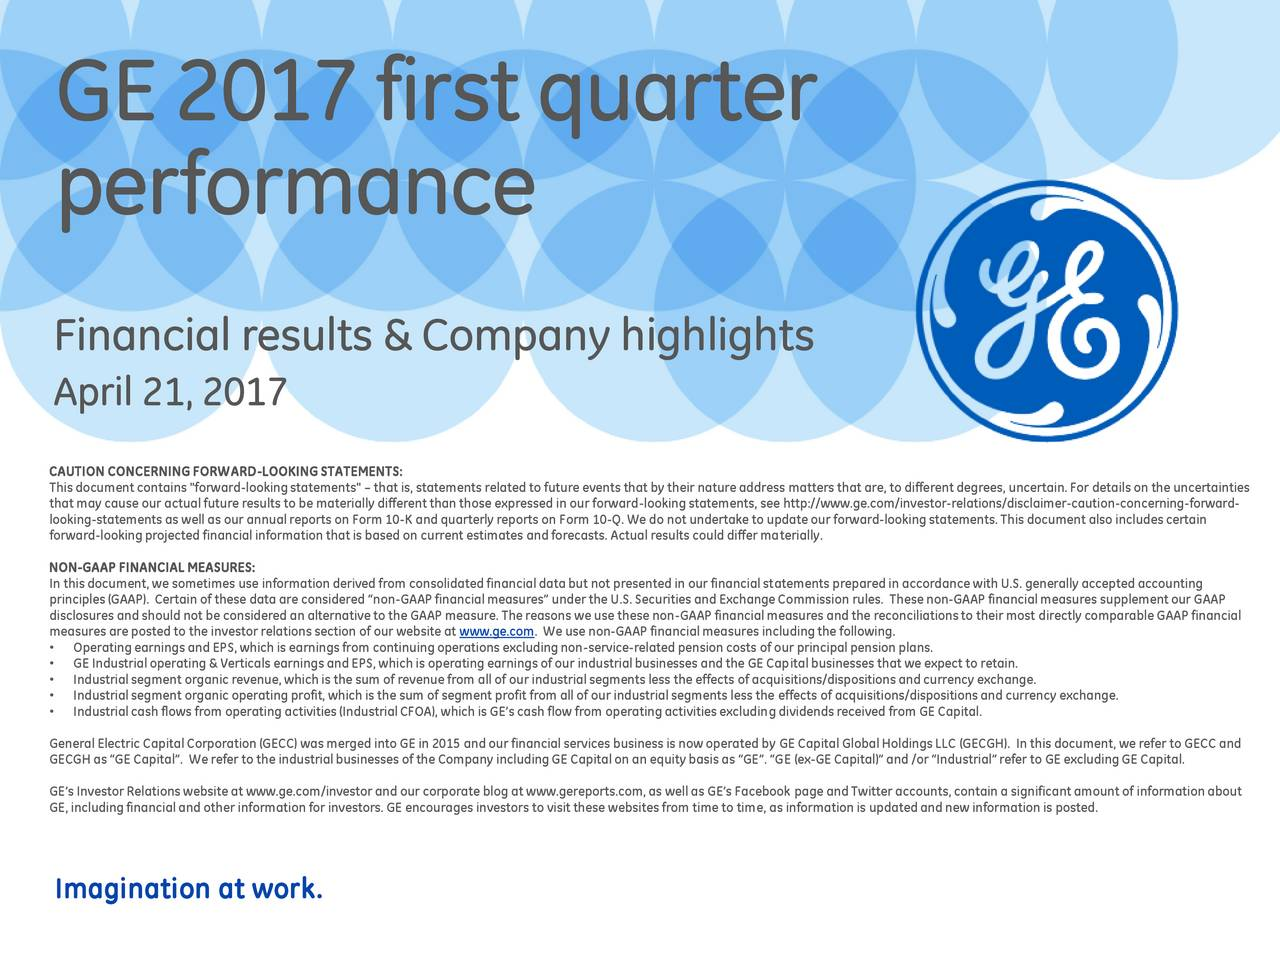 """performance Financial results & Company highlights April 21, 2017 CAUTION CONCERNING FORWARD-LOOKING STATEMENTS: This document contains """"forward-lookingstatements""""  that is, statements related to future events that by their natureaddress matters that are, to different degrees, uncertain.For detailson the uncertainties that may cause our actual future results to be materially different than those expressed in our forward-lookingstatements, see http://www.ge.com/investor-relations/disclaimer-caution-concerning-forward- forward-lookingprojected financial information that is based on current estimates and forecasts. Actual results could differ materially.rd-lookingstatements. This document also includescertain NON-GAAP FINANCIAL MEASURES: In this document, we sometimes use information derived from consolidated financialdata but not presented in our financialstatements prepared in accordance with U.S. generally accepted accounting disclosures and should not be considered an alternative to the GAAP measure. The reasons we use these non-GAAP financial measures and the reconciliationsto their most directly comparable GAAP financial measures are posted to the investor relations section of our website at www.ge.com. We use non-GAAP financialmeasures includingthe following. Operatingearningsand EPS, which is earningsfrom continuingoperations excludingnon-service-related pension costs of our principal pension plans. Industrialsegment organic revenue, which is the sum of revenue from all of our industrialsegments less the effects of acquisitions/dispositionsand currency exchange. Industrialsegment organic operating profit, which is the sum of segment profit from all of our industrialsegments less the effects of acquisitions/dispositionsand currency exchange. Industrialcash flows from operating activities(IndustrialCFOA), which is GEs cash flow from operating activitiesexcludingdividendsreceived from GE Capital. GECGH as GE Capital. We refer to the industrialbusinesses of the Com"""